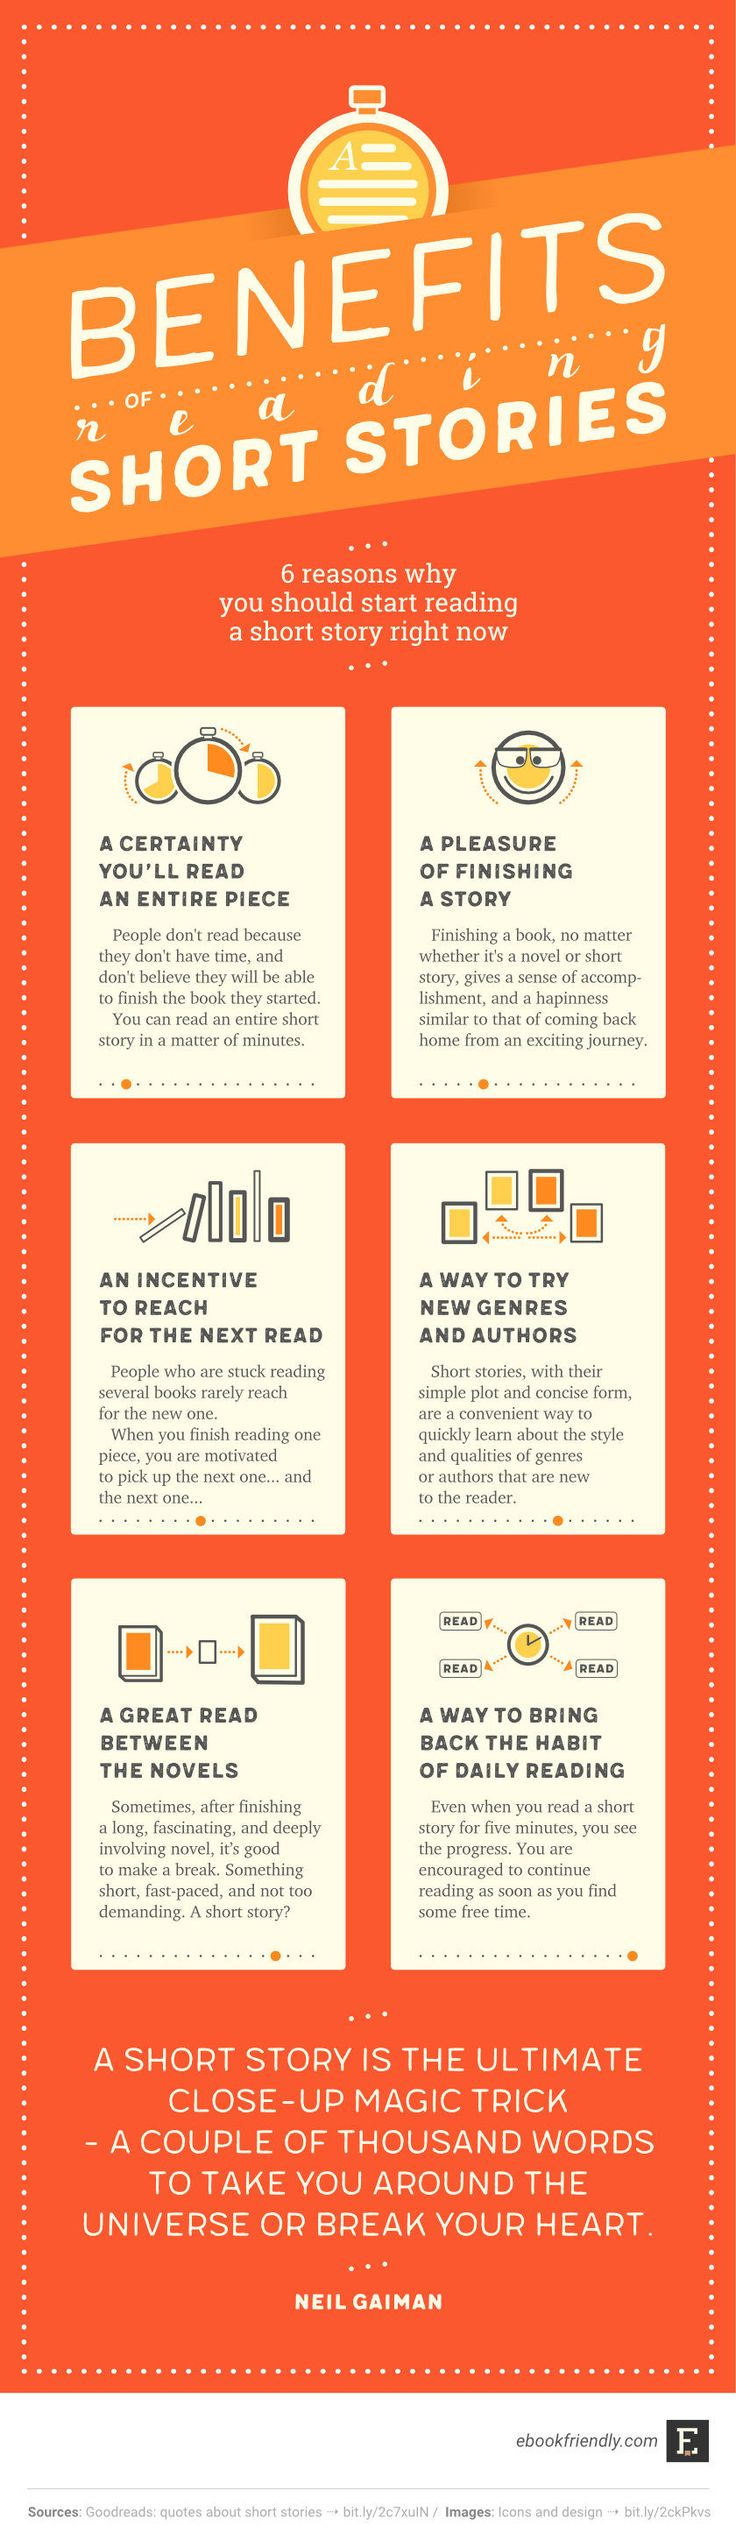 Benefits Of Reading Short Stories (infographic)